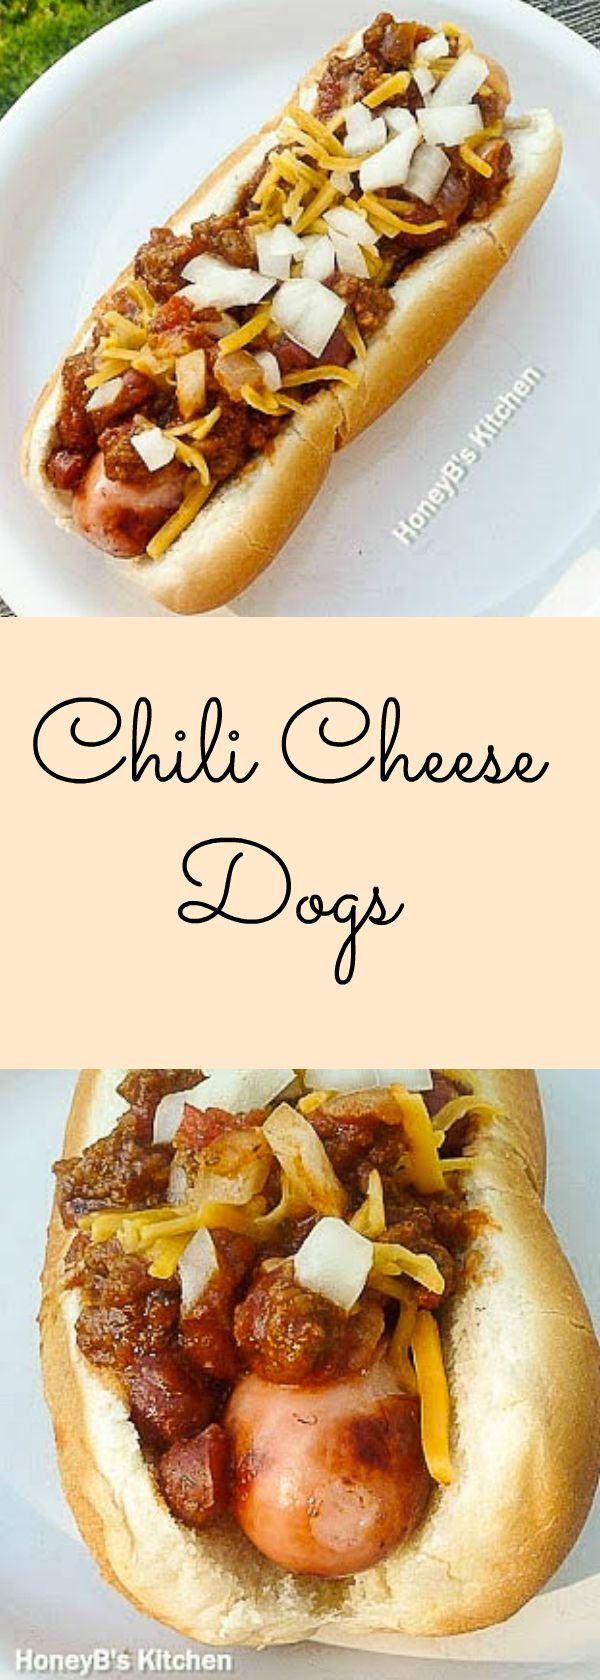 Buried in chili and covered with cheese and onions, Chili Cheese Dogs are easy to make delicious dinner treat for your family!